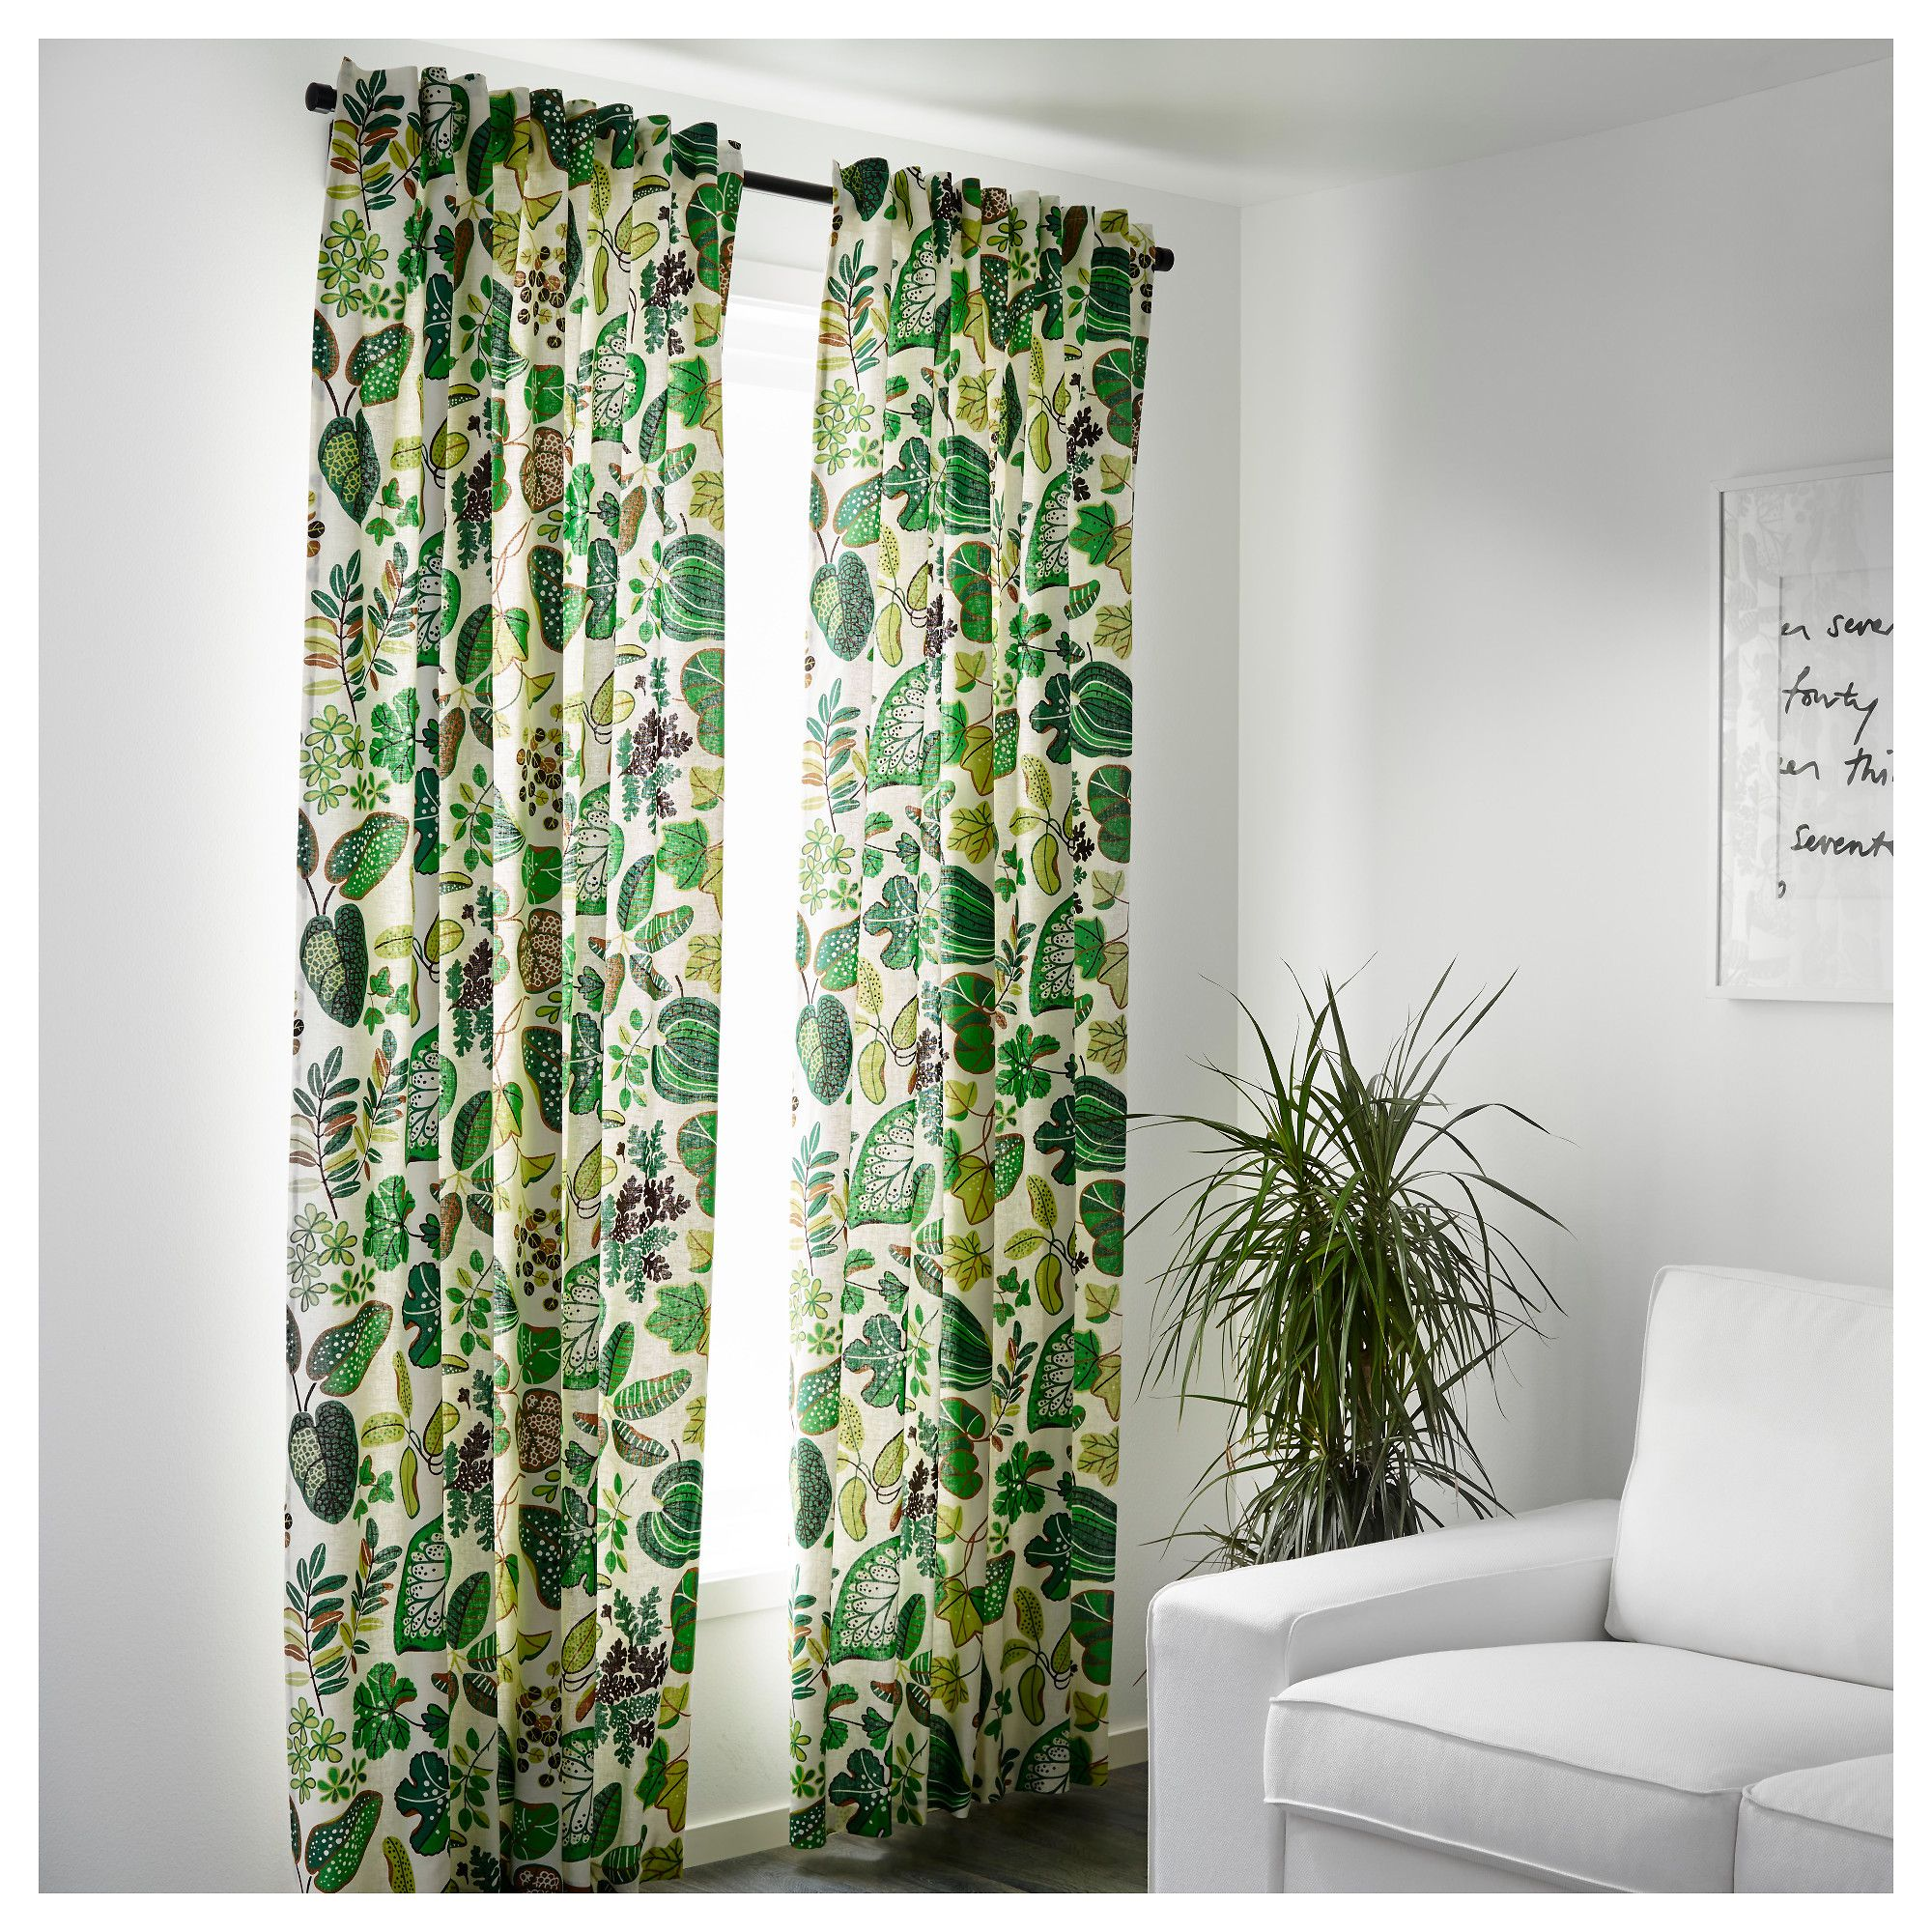 panel ikea curtain velvet me tab curtains back demetratours linen pocket rod window lined